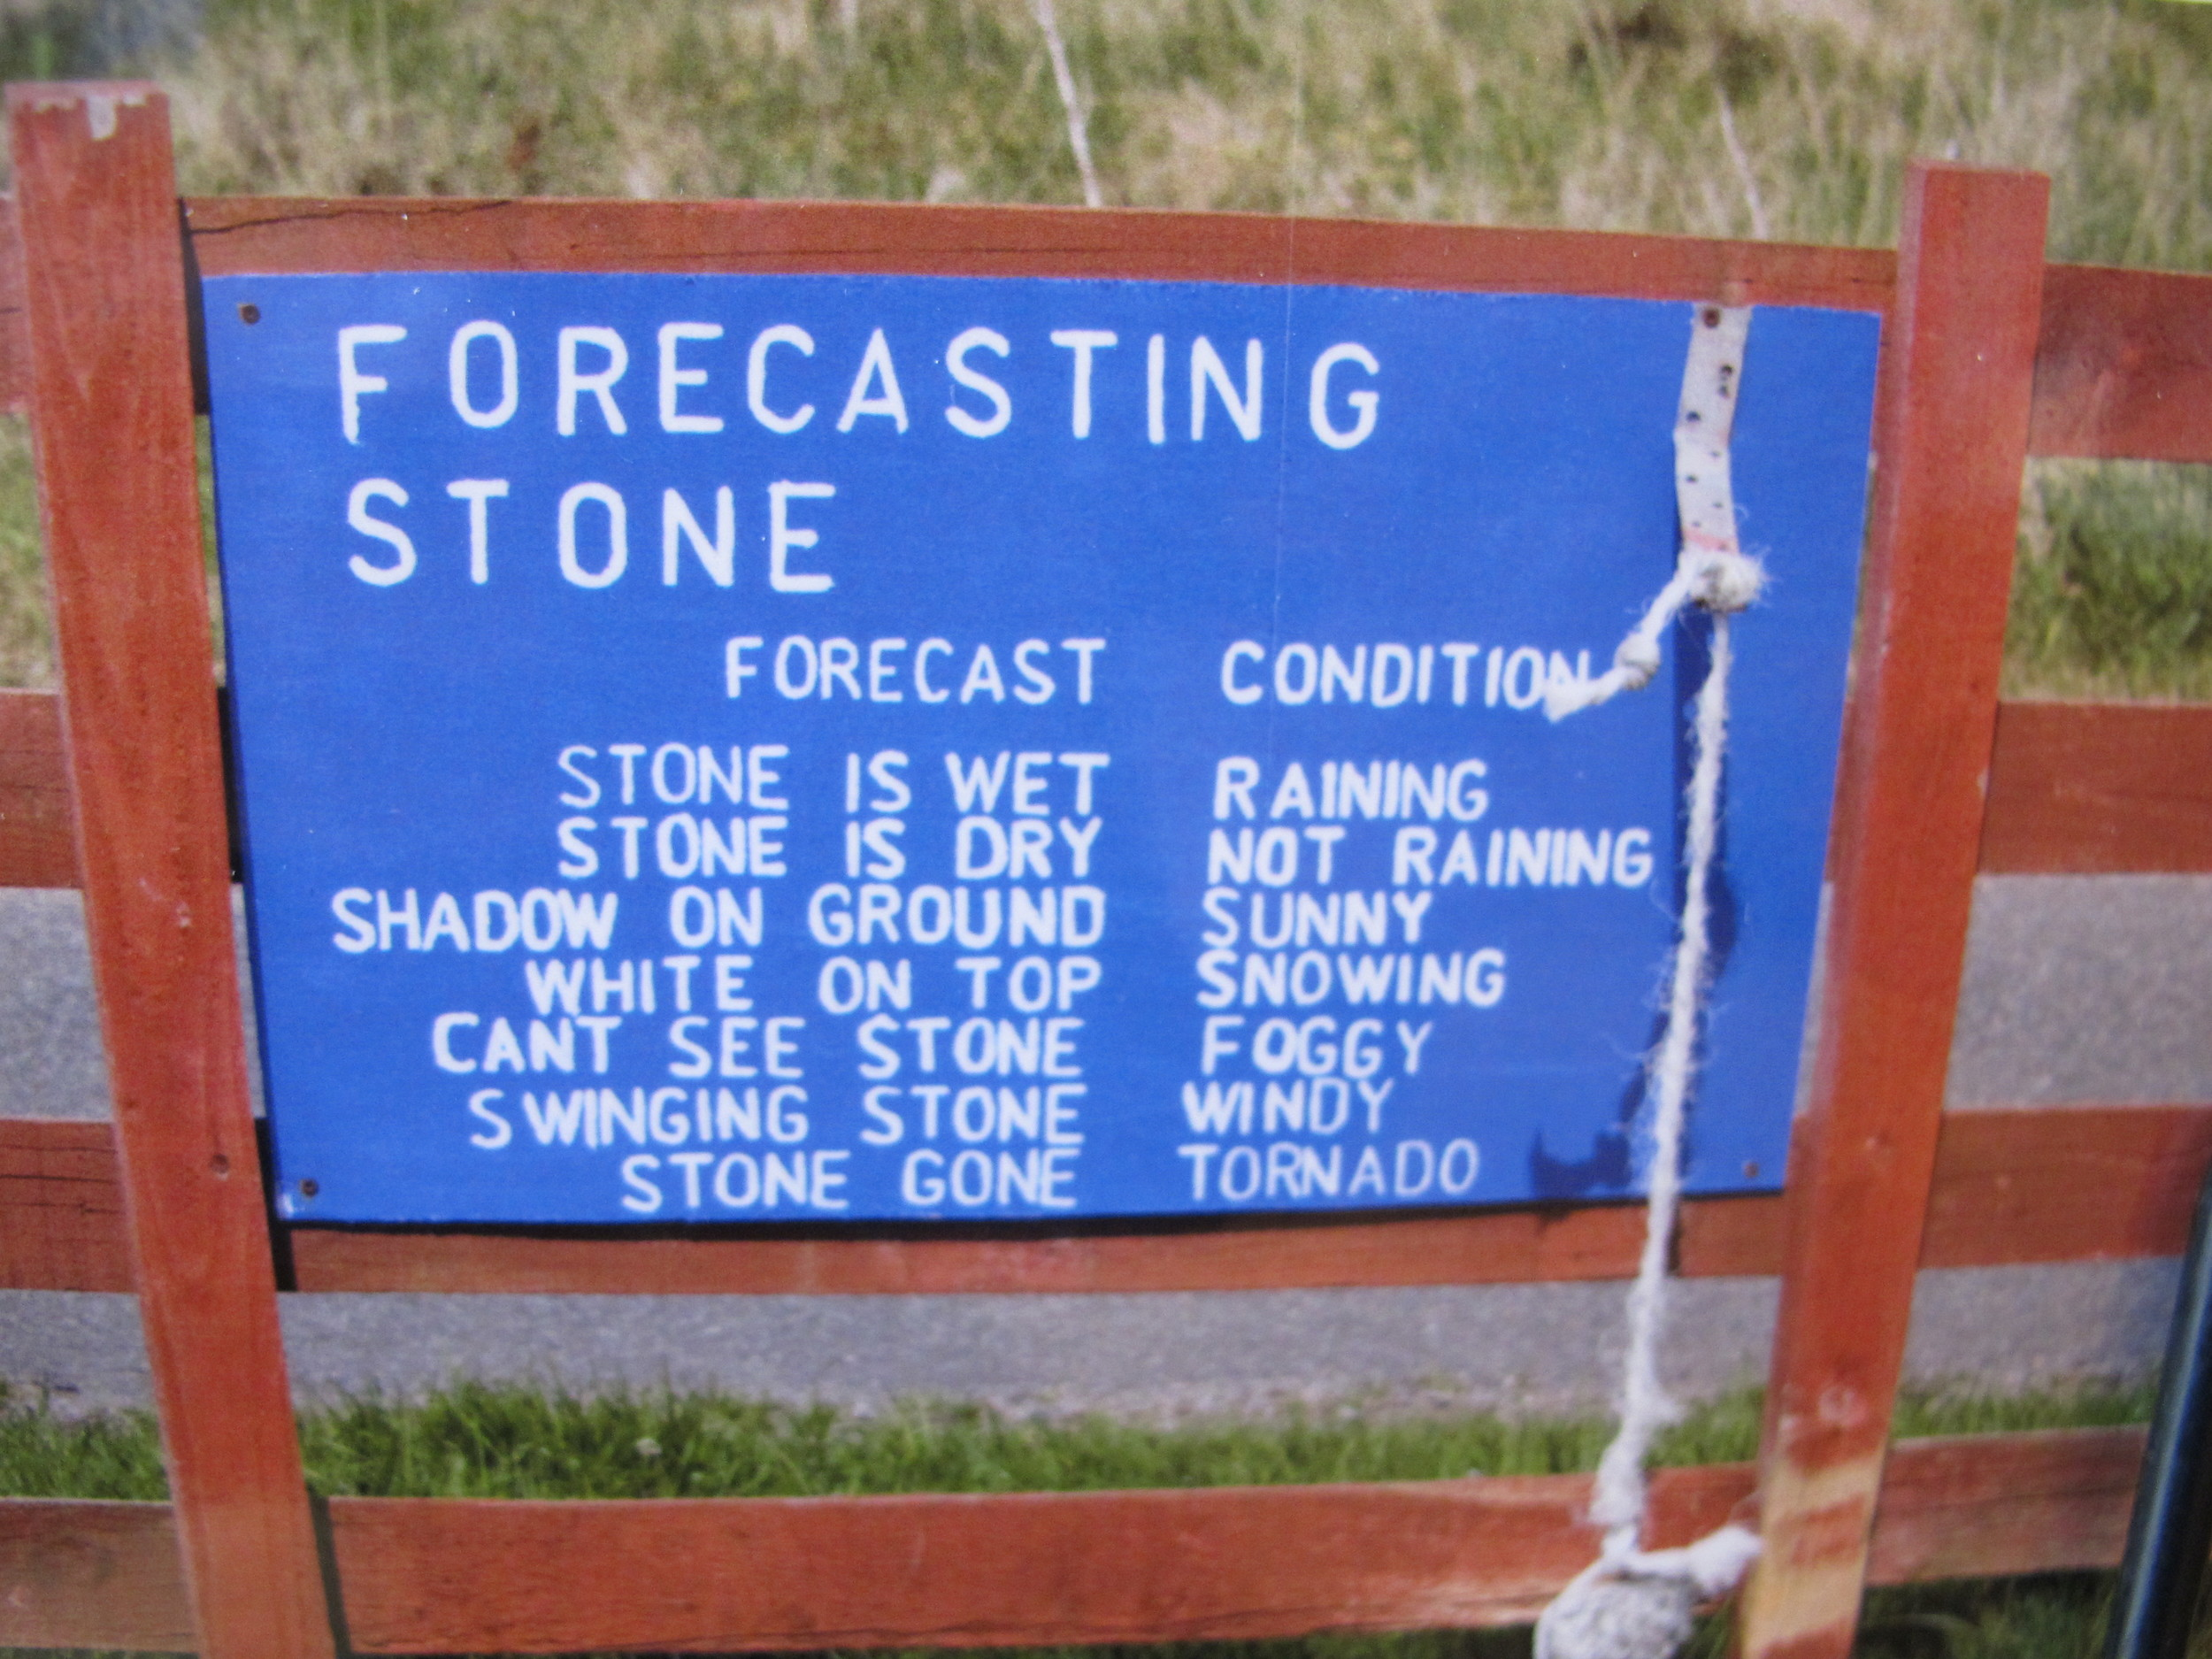 The winds at one spot topped 60 mph and nearly blew my dad over. This sign sums it up nicely.